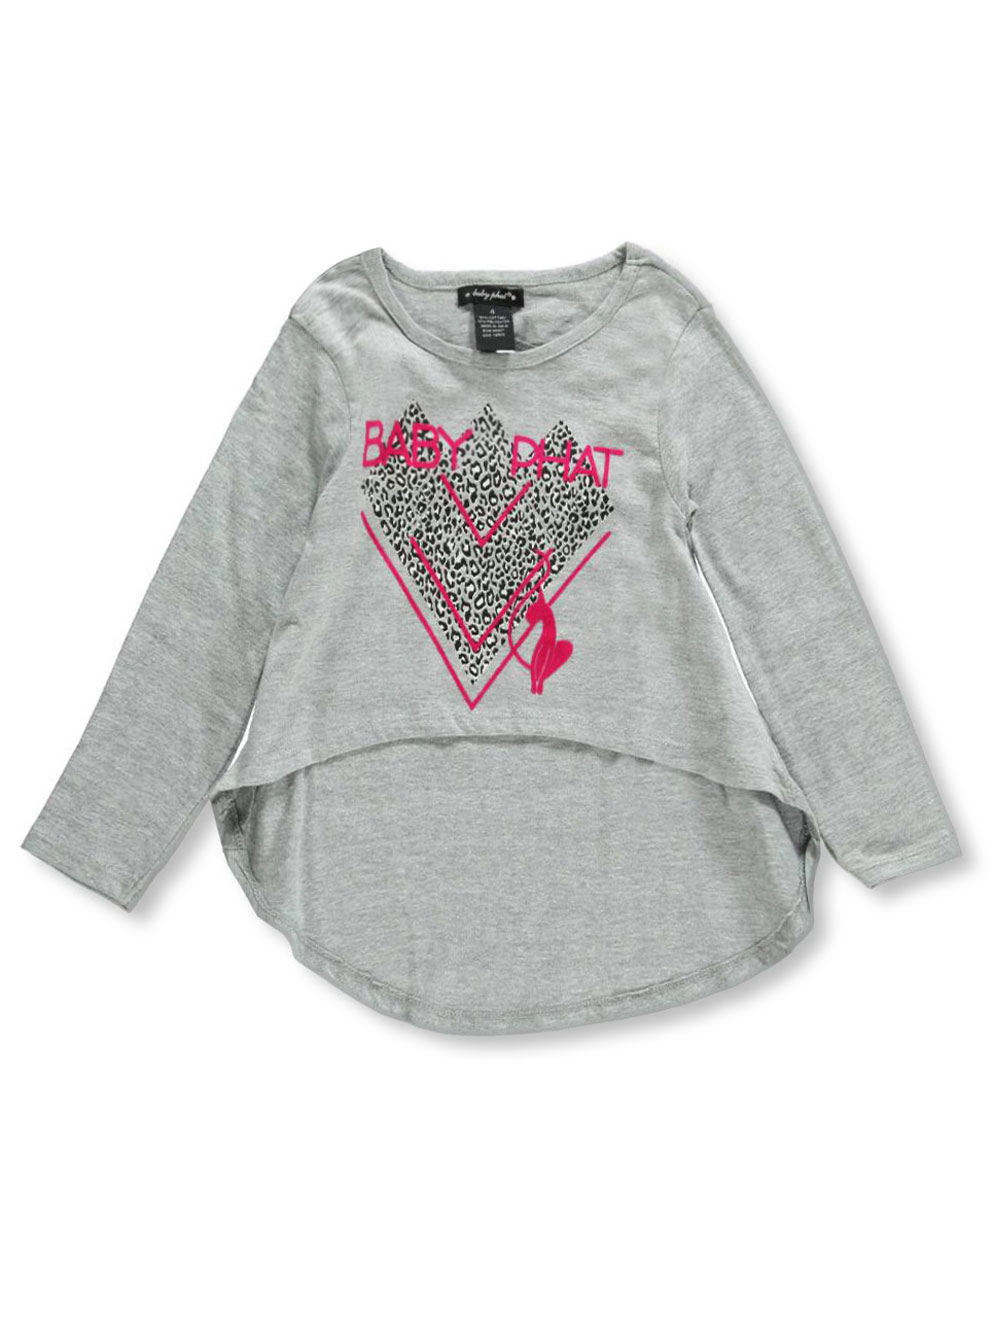 Baby Phat Little Girls'